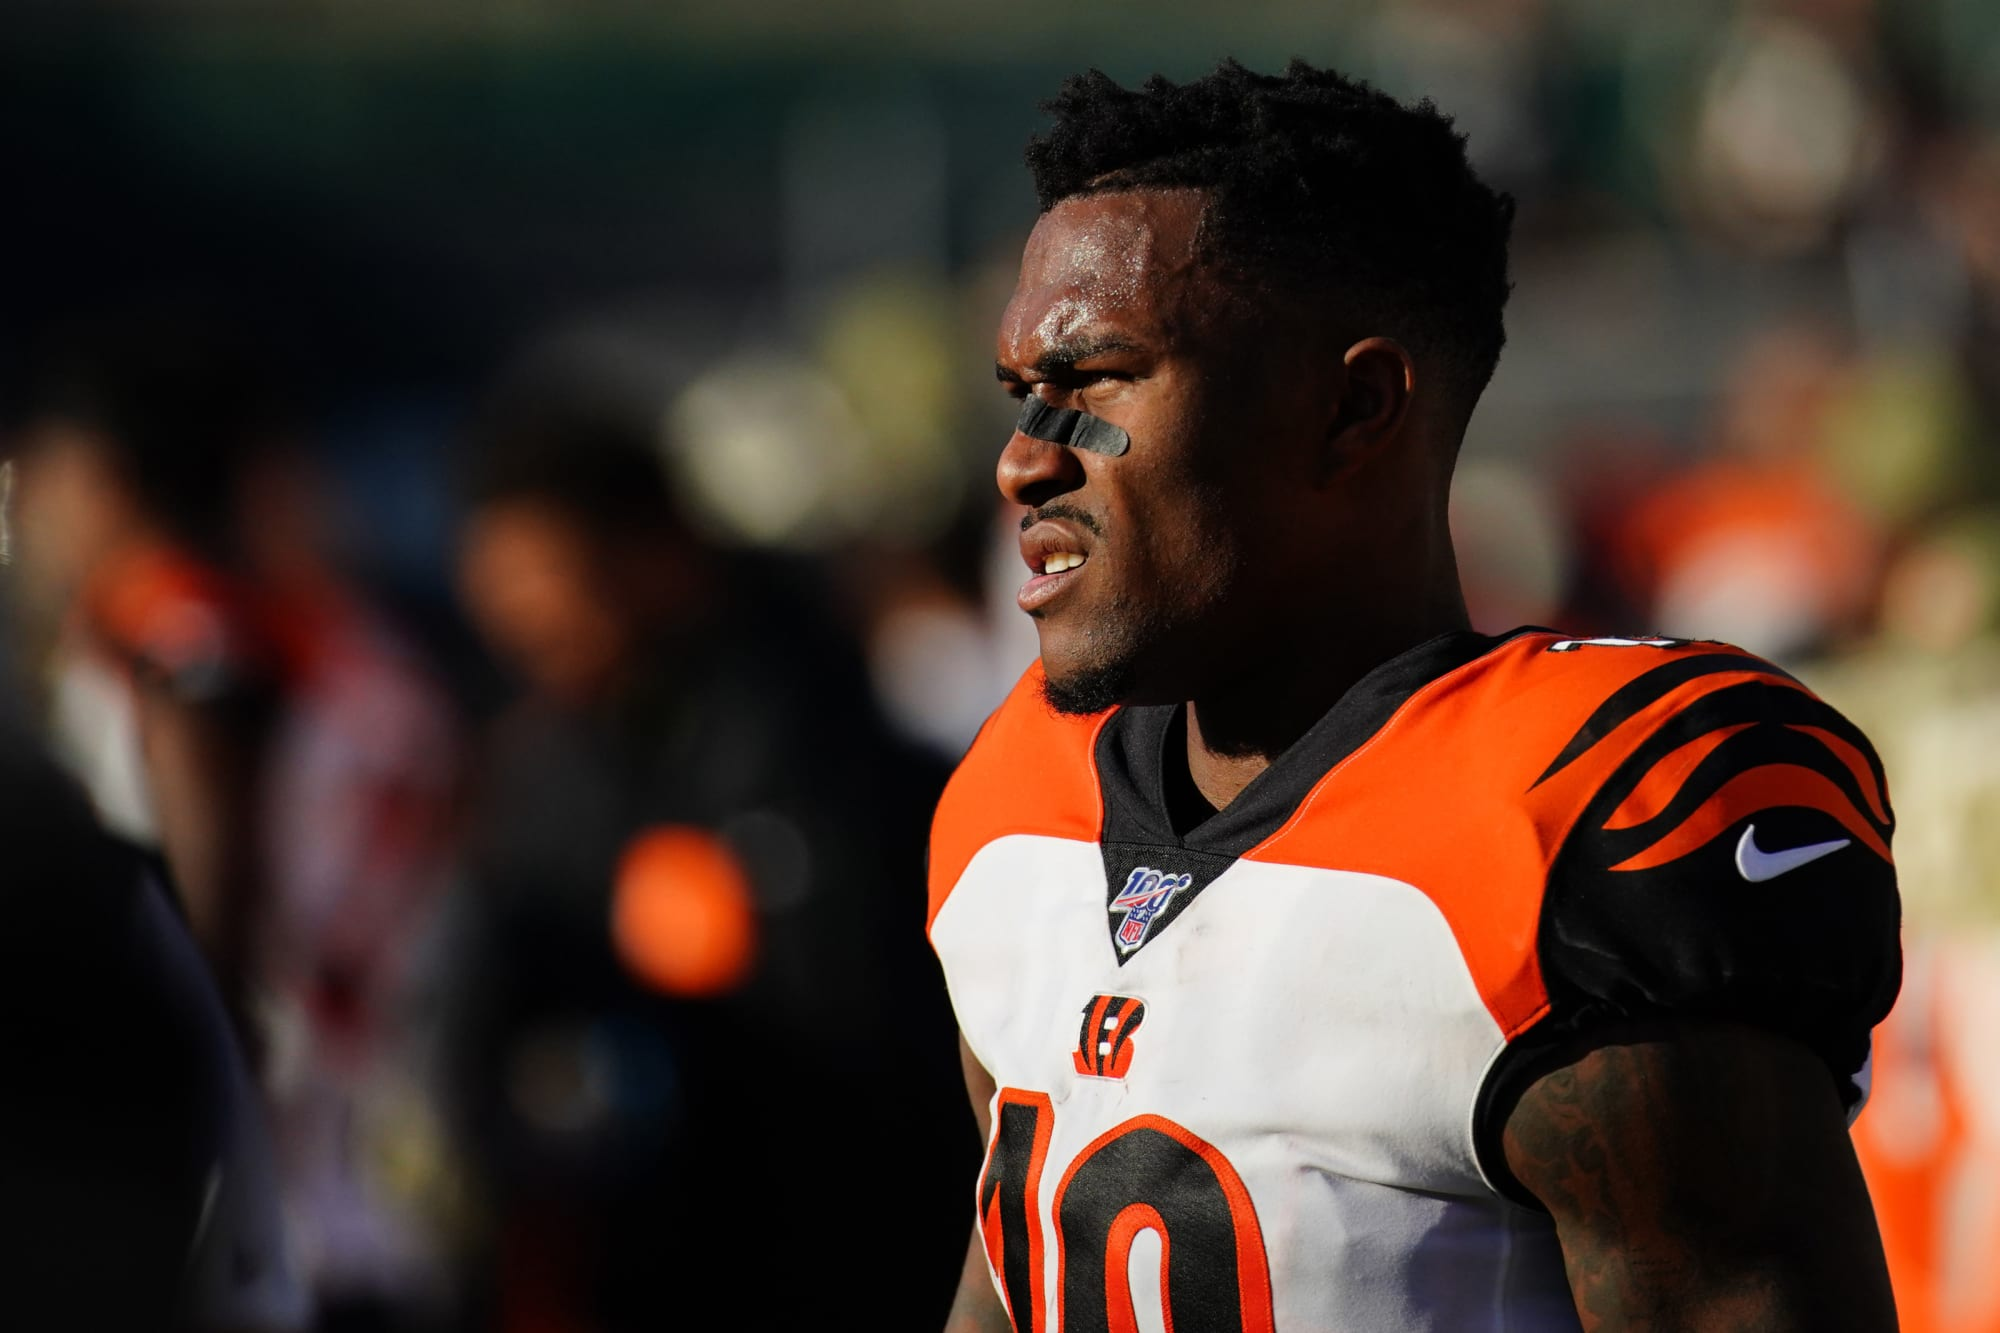 Bengals News: Auden Tate could reportedly request a trade ...